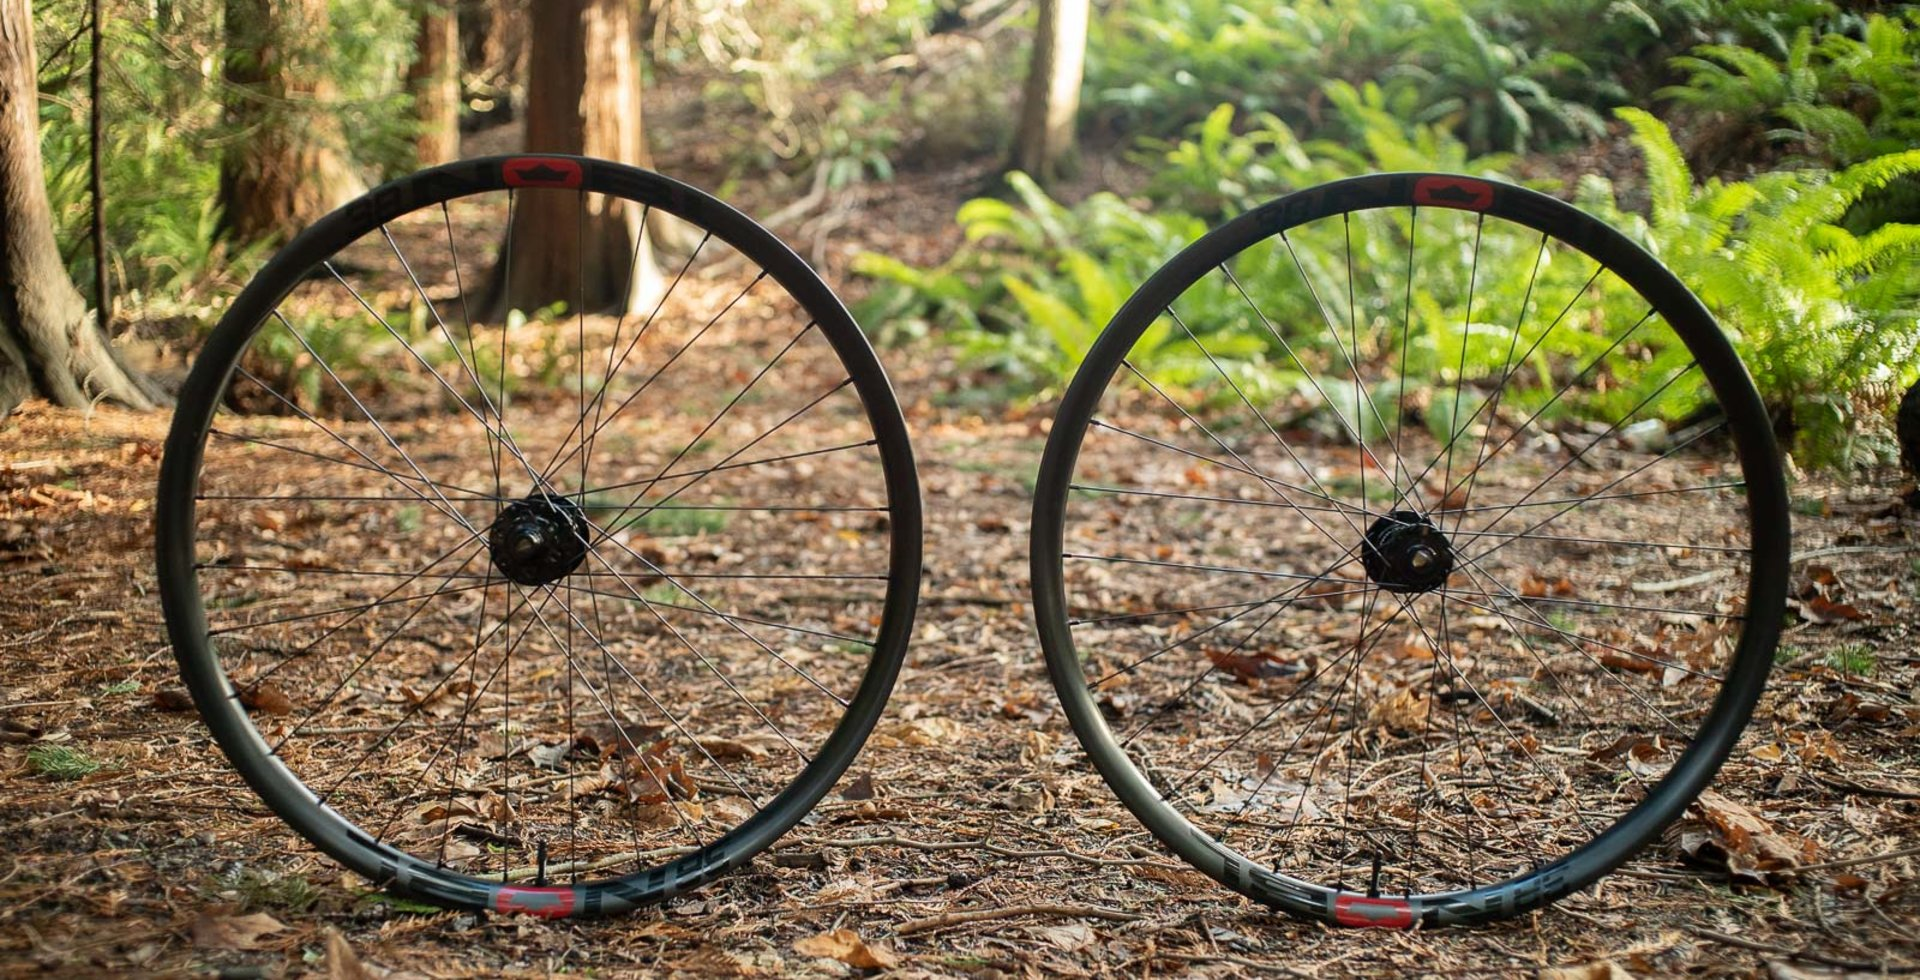 NOBL's second iteration of the TR38 rim might look ordinary from afar but the difference is in the details.